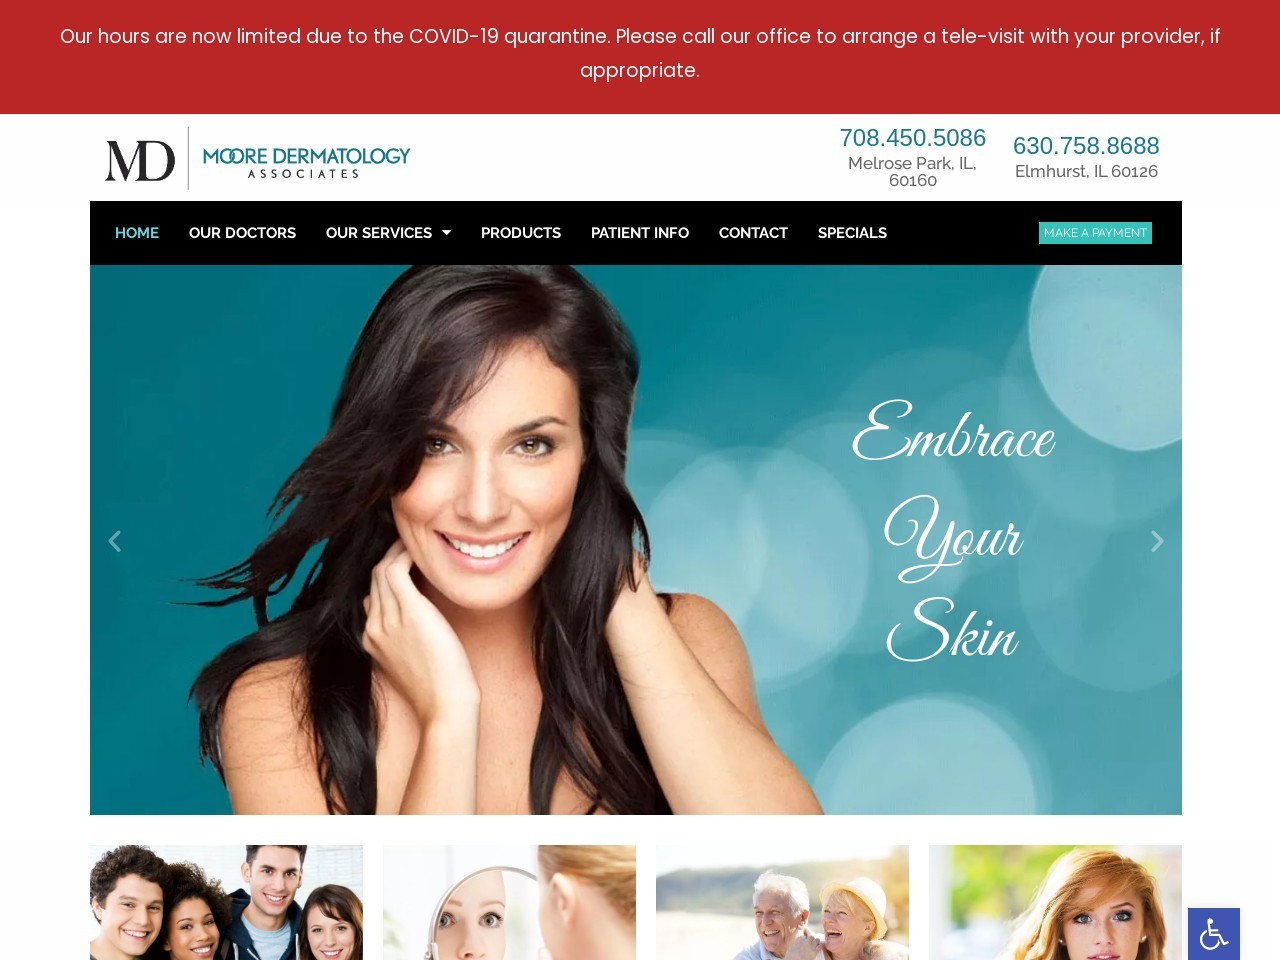 mooredermatology.com screenshot